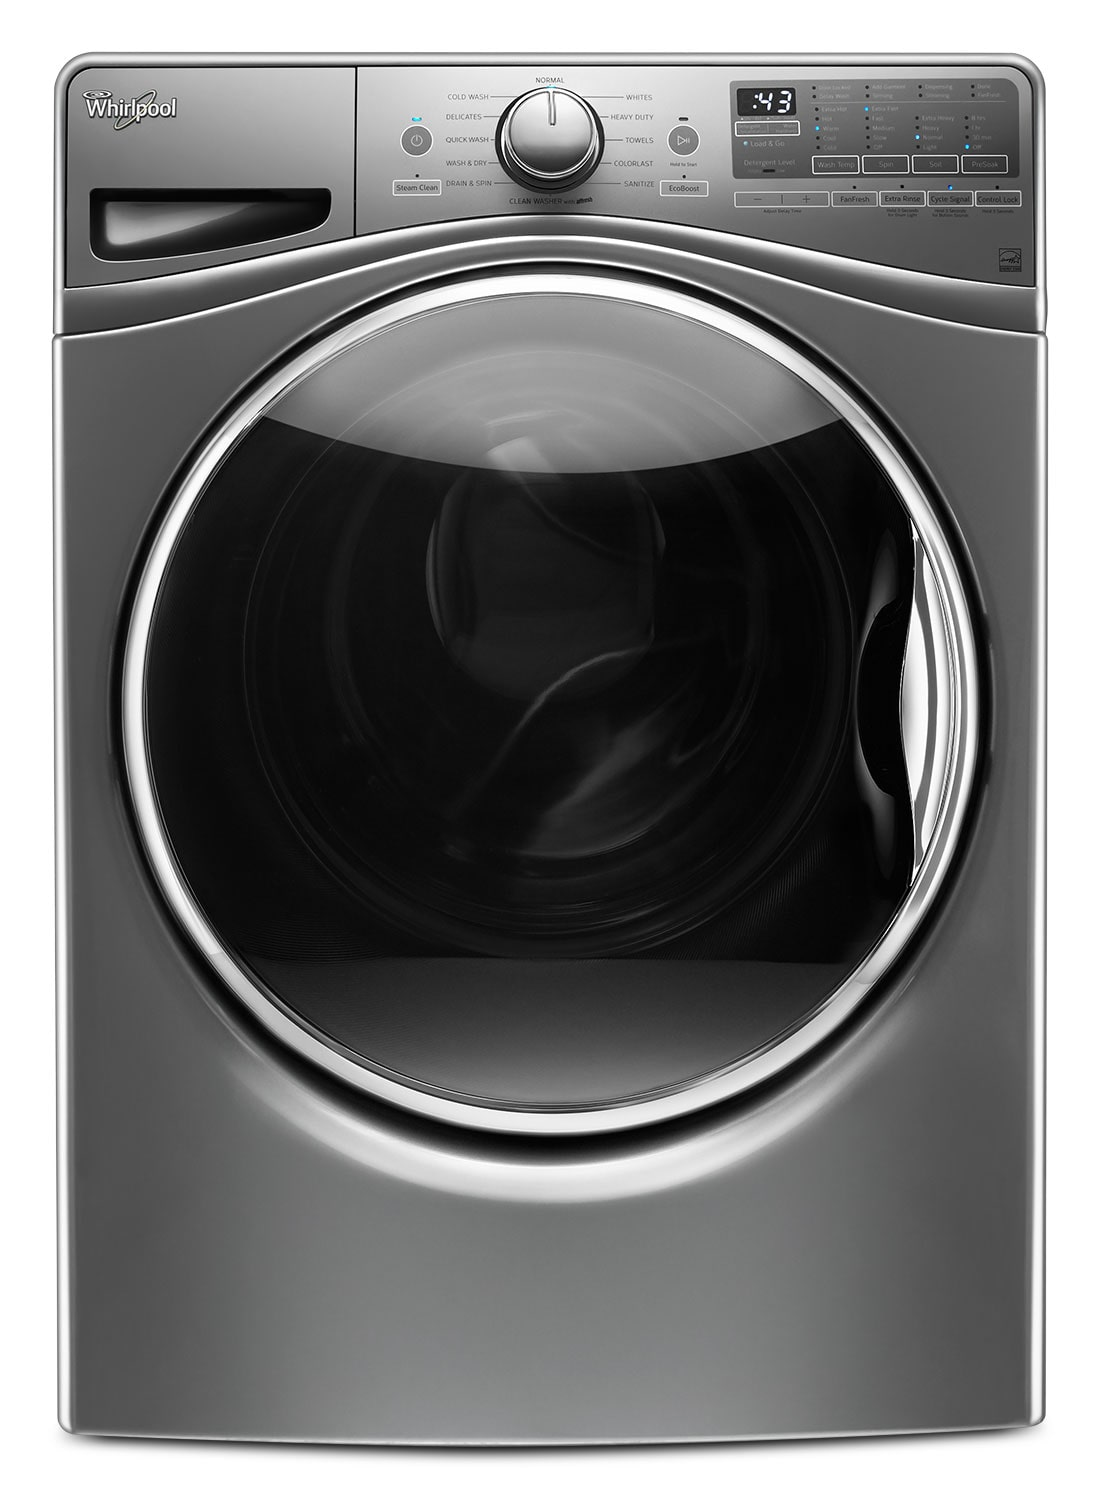 Washers and Dryers - Whirlpool Chrome Shadow Front-Load Washer (4.8 Cu. Ft. IEC) - WFW9290FC